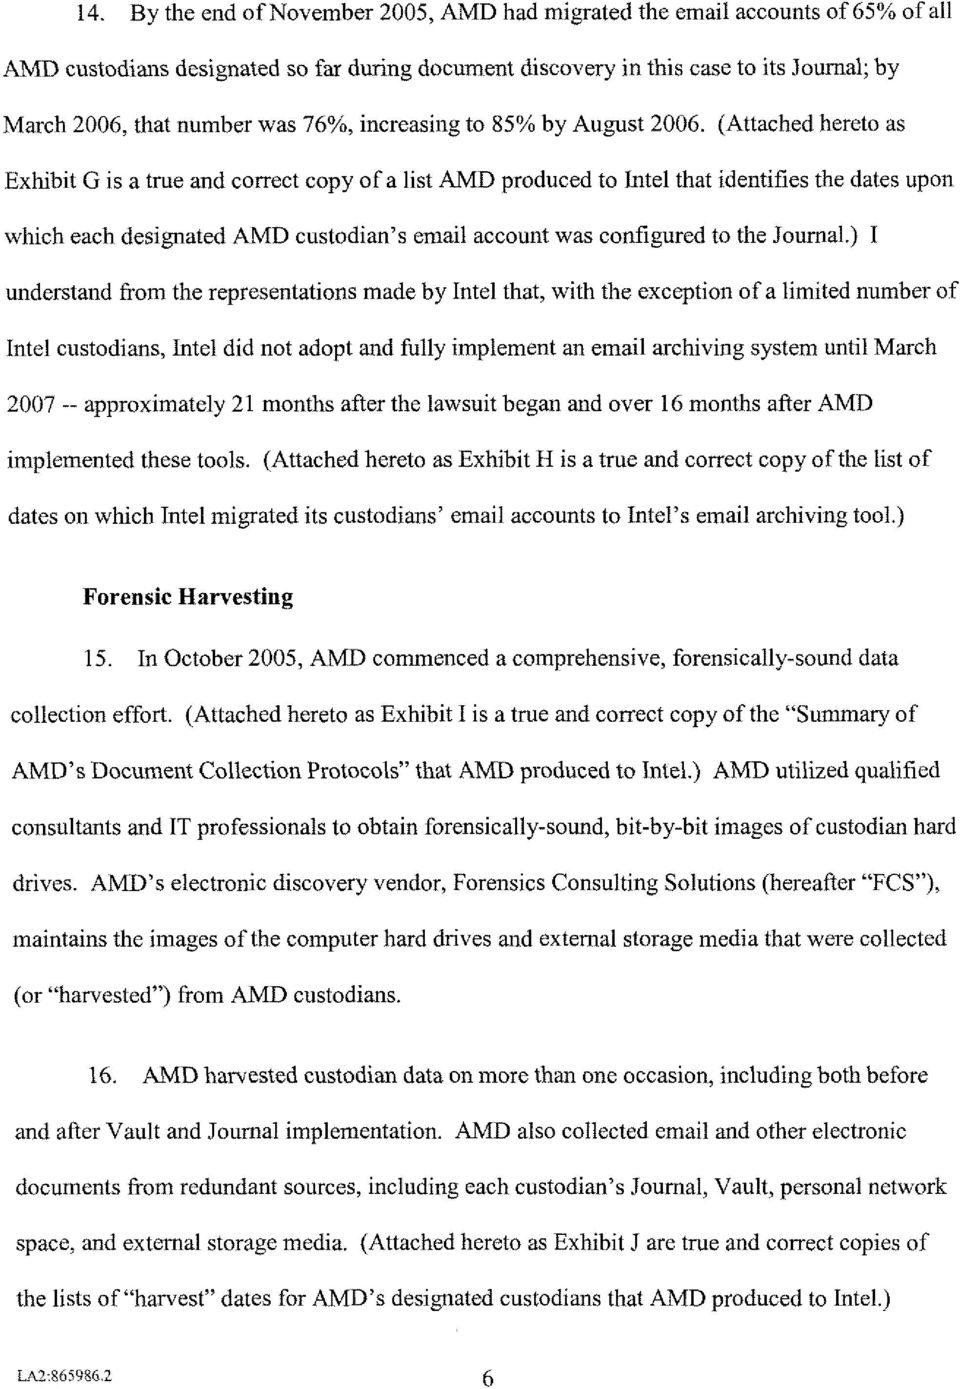 (Attached hereto as Exhibit G is a true and correct copy of a list AMD produced to Intel that identifies the dates upon which each designated AMD custodian's email account was configured to the